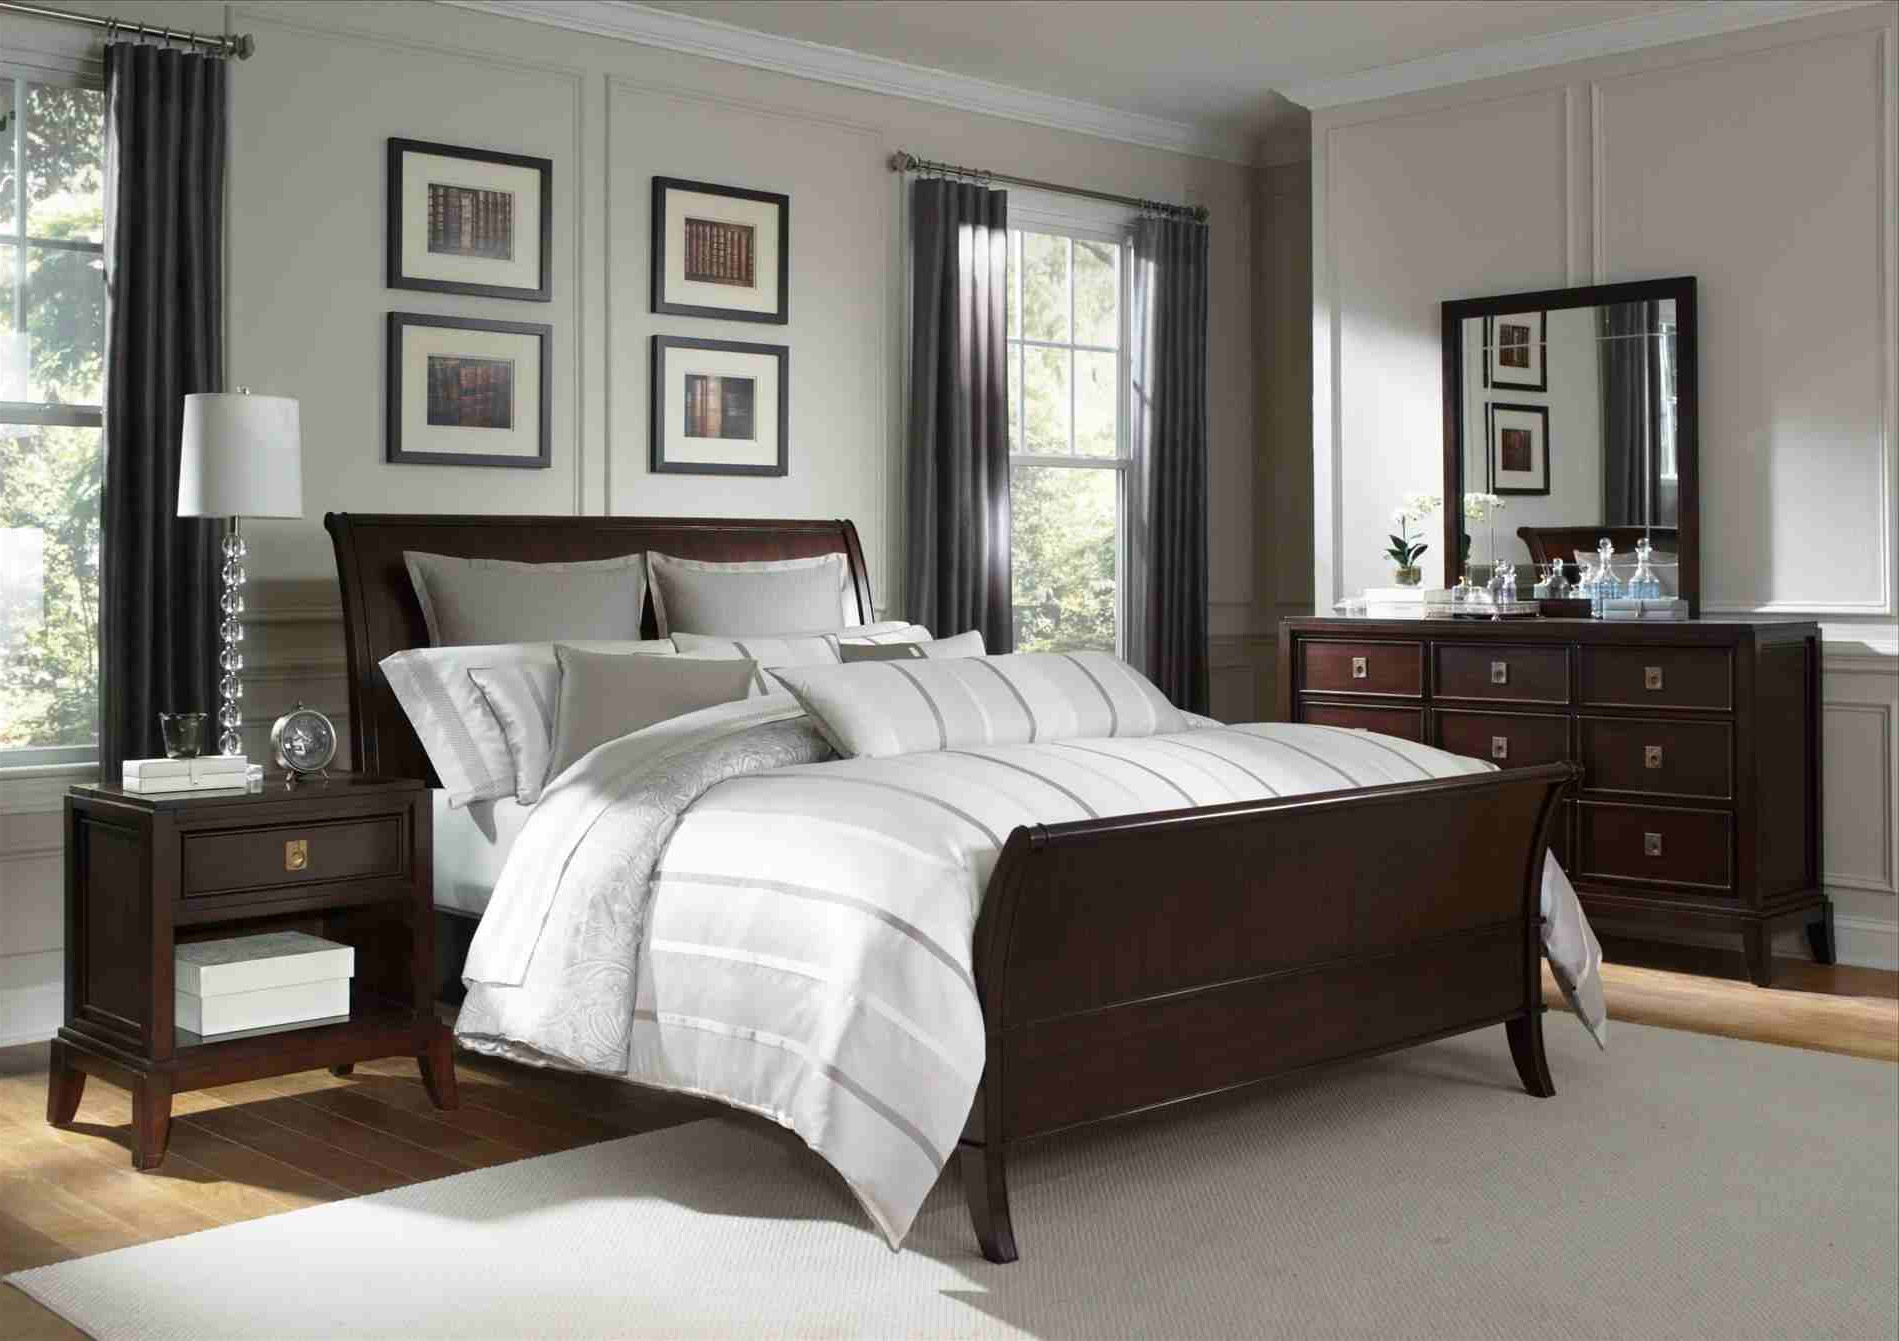 Master Bedroom Ideas For Couples Modern Color Schemes Lovely throughout Modern Master Bedroom Paint Colors